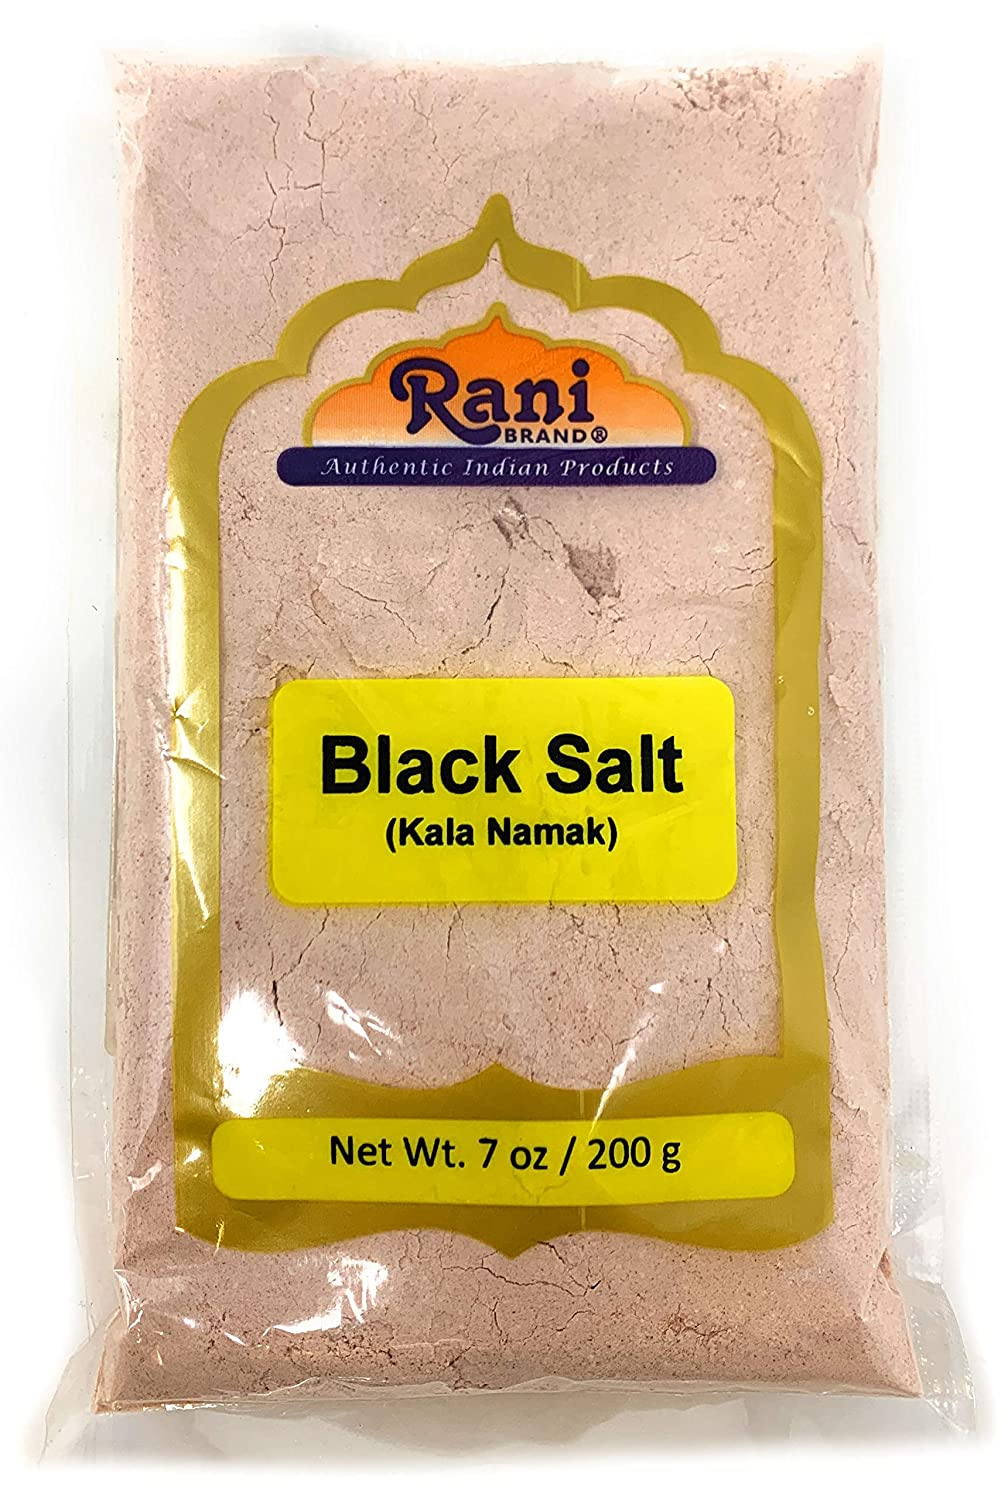 Rani Black Salt (Kala Namak Mineral) Powder, Vegan 200g (7oz) Unrefined, Pure and Natural | Gluten Free Ingredients | NON-GMO | Indian Origin | Perfect for Tofu Scramble - Natural Egg Taste